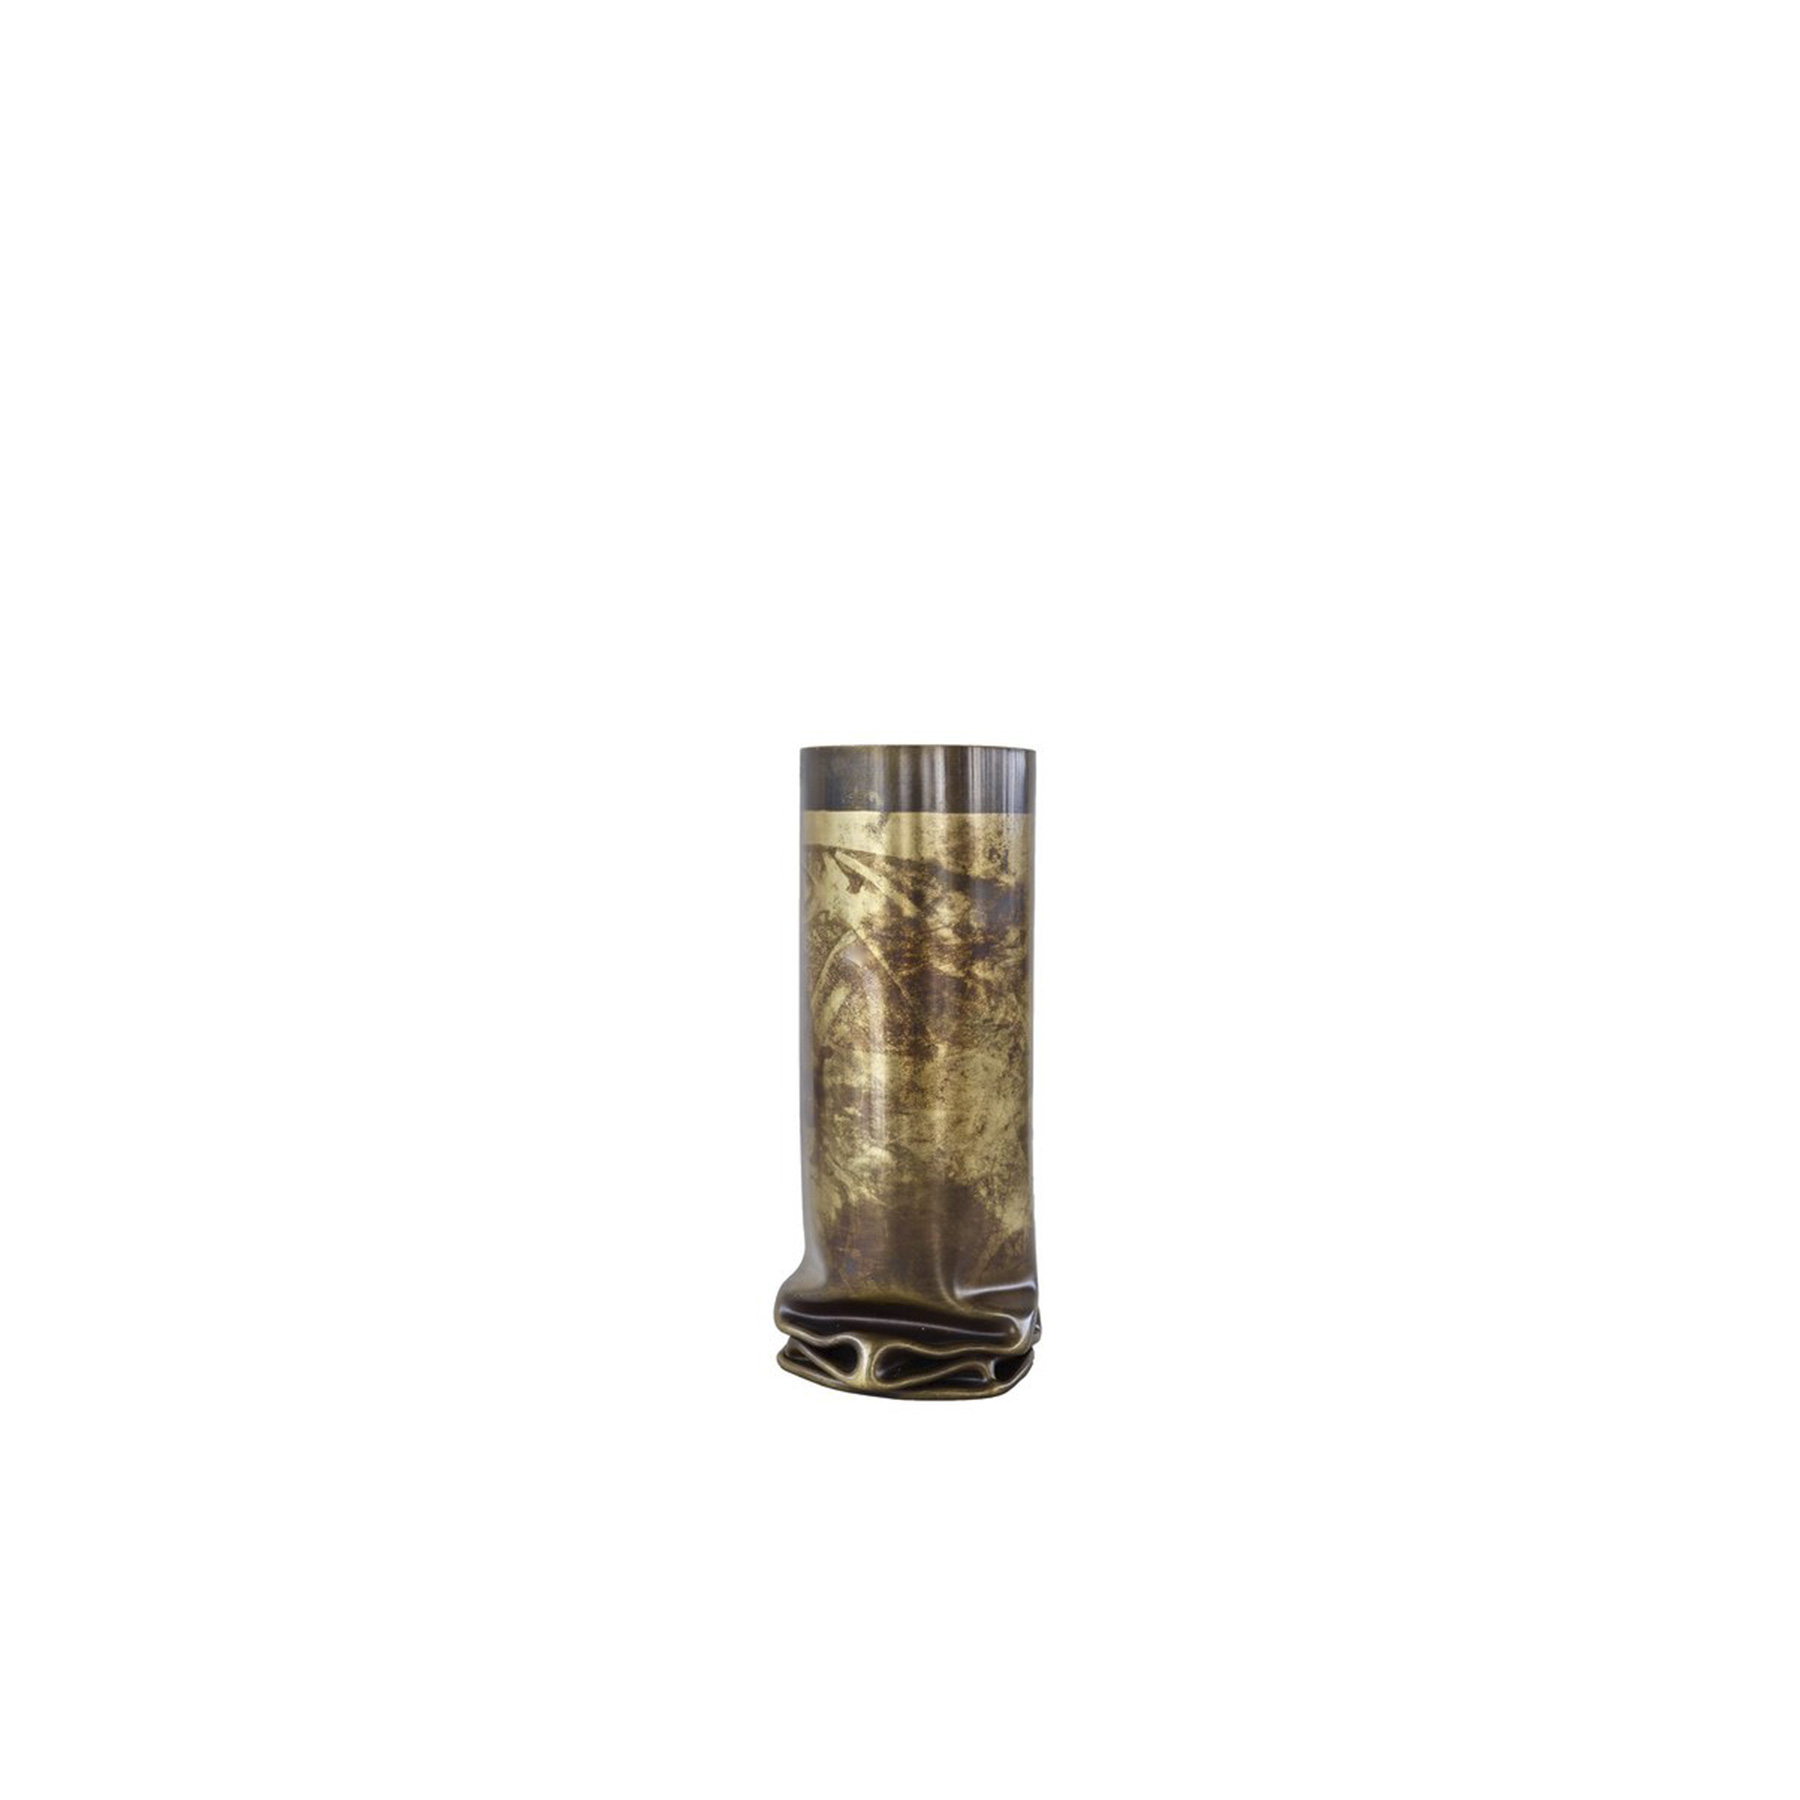 Hot Brass Small Vase - This small vase part of the Hot Brass collection boasts a contemporary and industrial flair and will be a superb decorative accent in any modern interior, either alone or combined with its larger versions. Entirely crafted by hand of brass, its cylindrical body is exposed to a naked flame from the inside, creating a stunning effect of melted metal at the base. This elegant texture, evocative of folded fabric, is accented with a bronzed effect. | Matter of Stuff